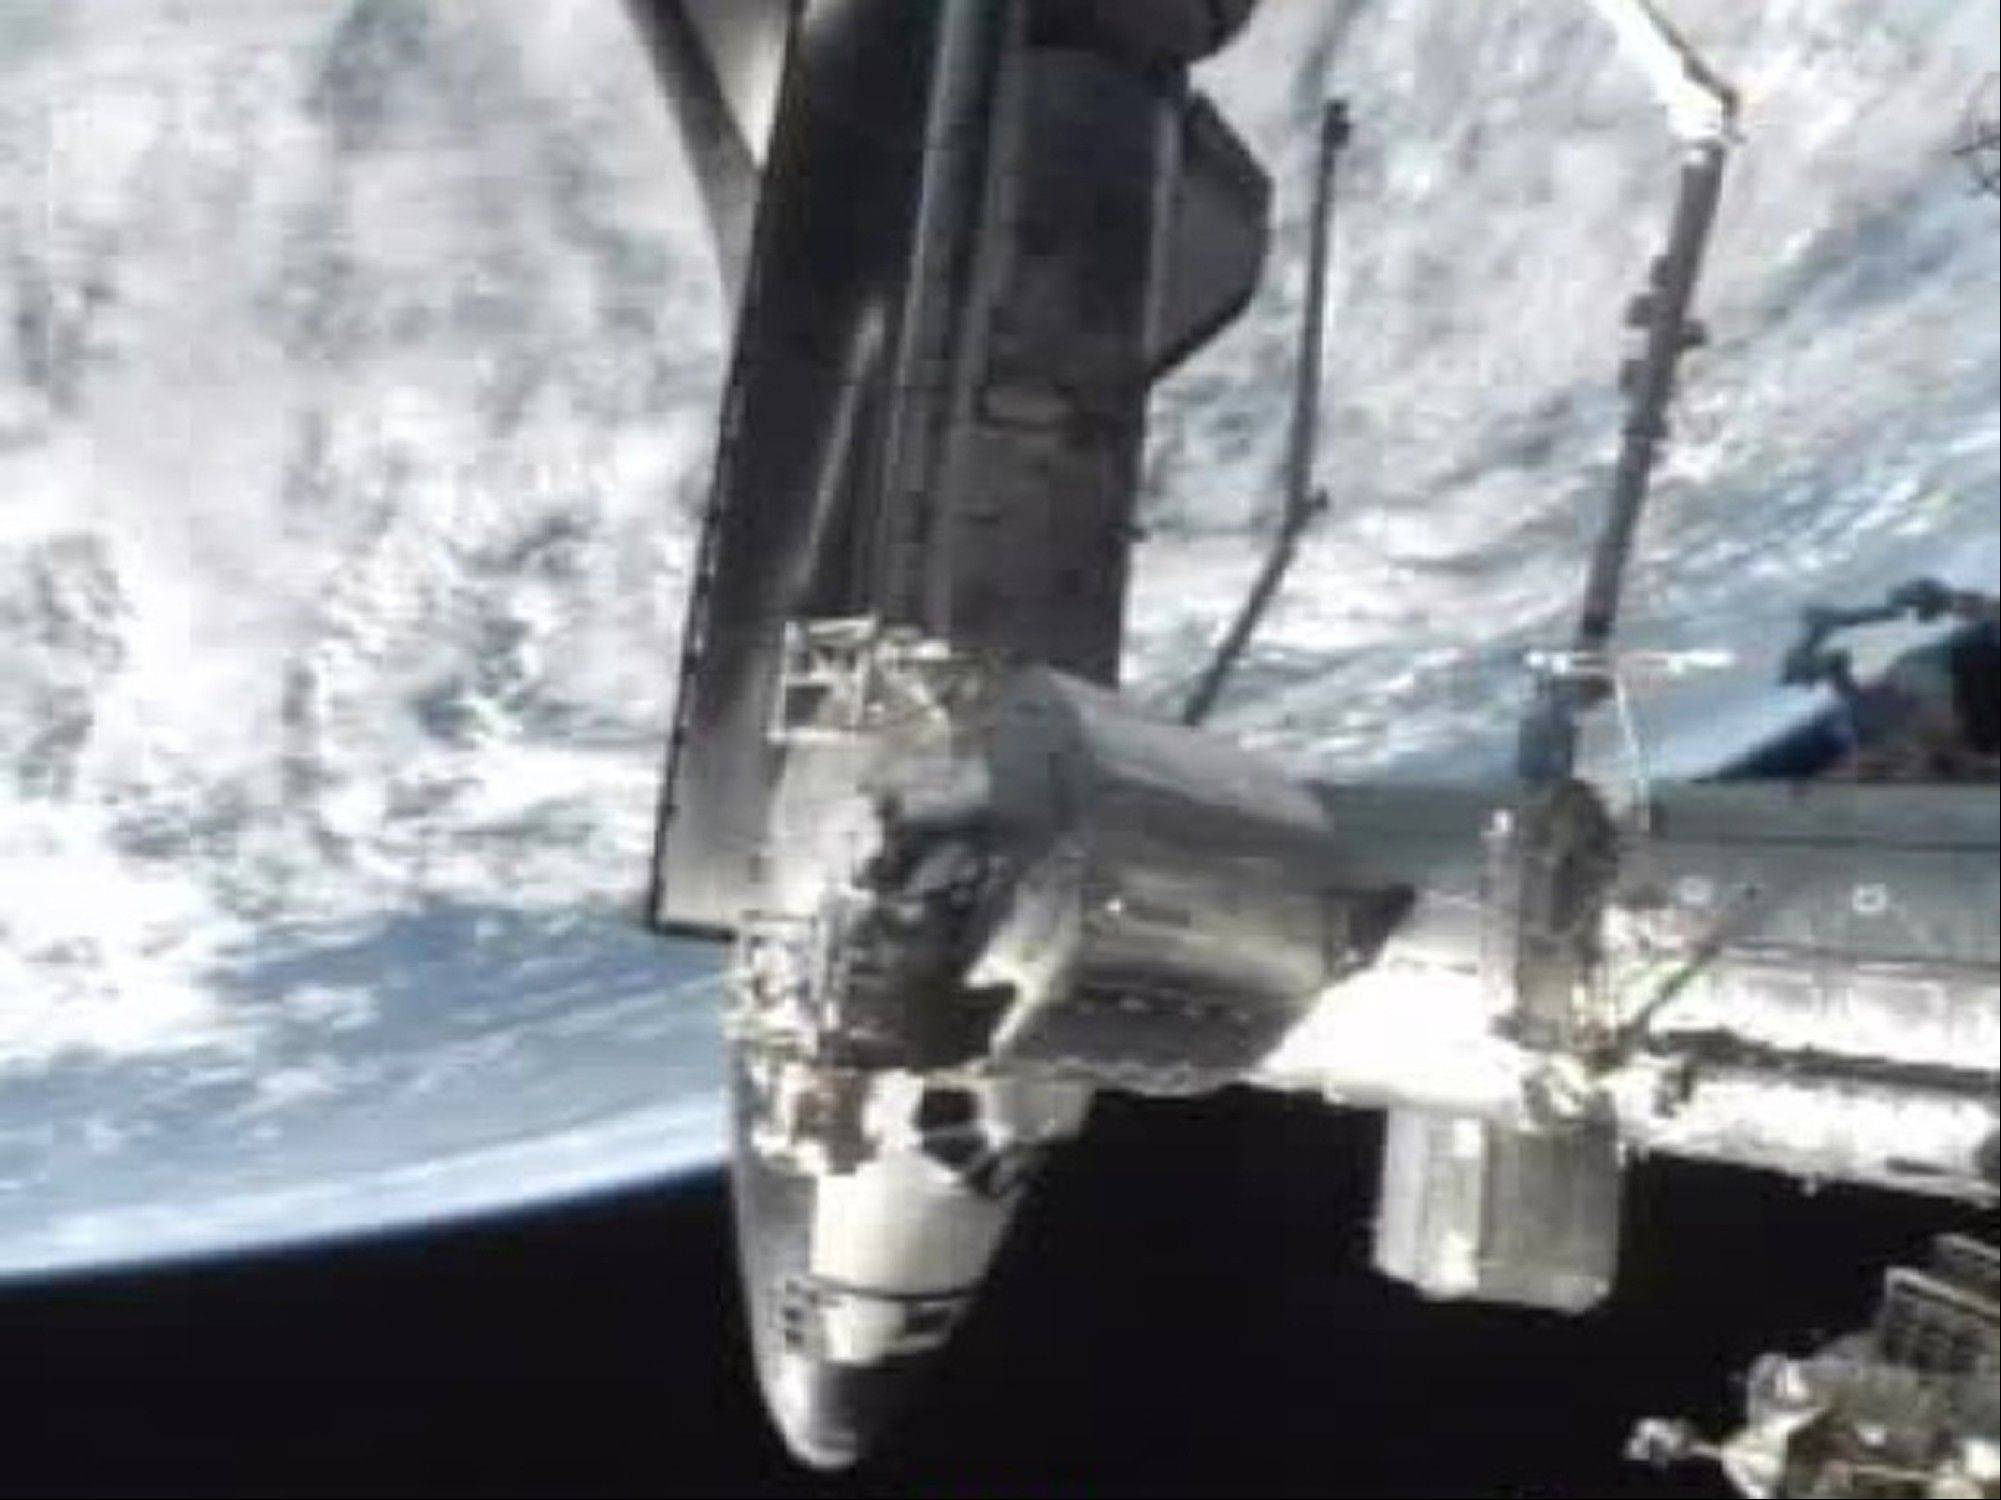 The shuttle Atlantis docks at the International Space Station on Sunday. Atlantis delivered more than 4 tons of food, clothes and other space station provisions.